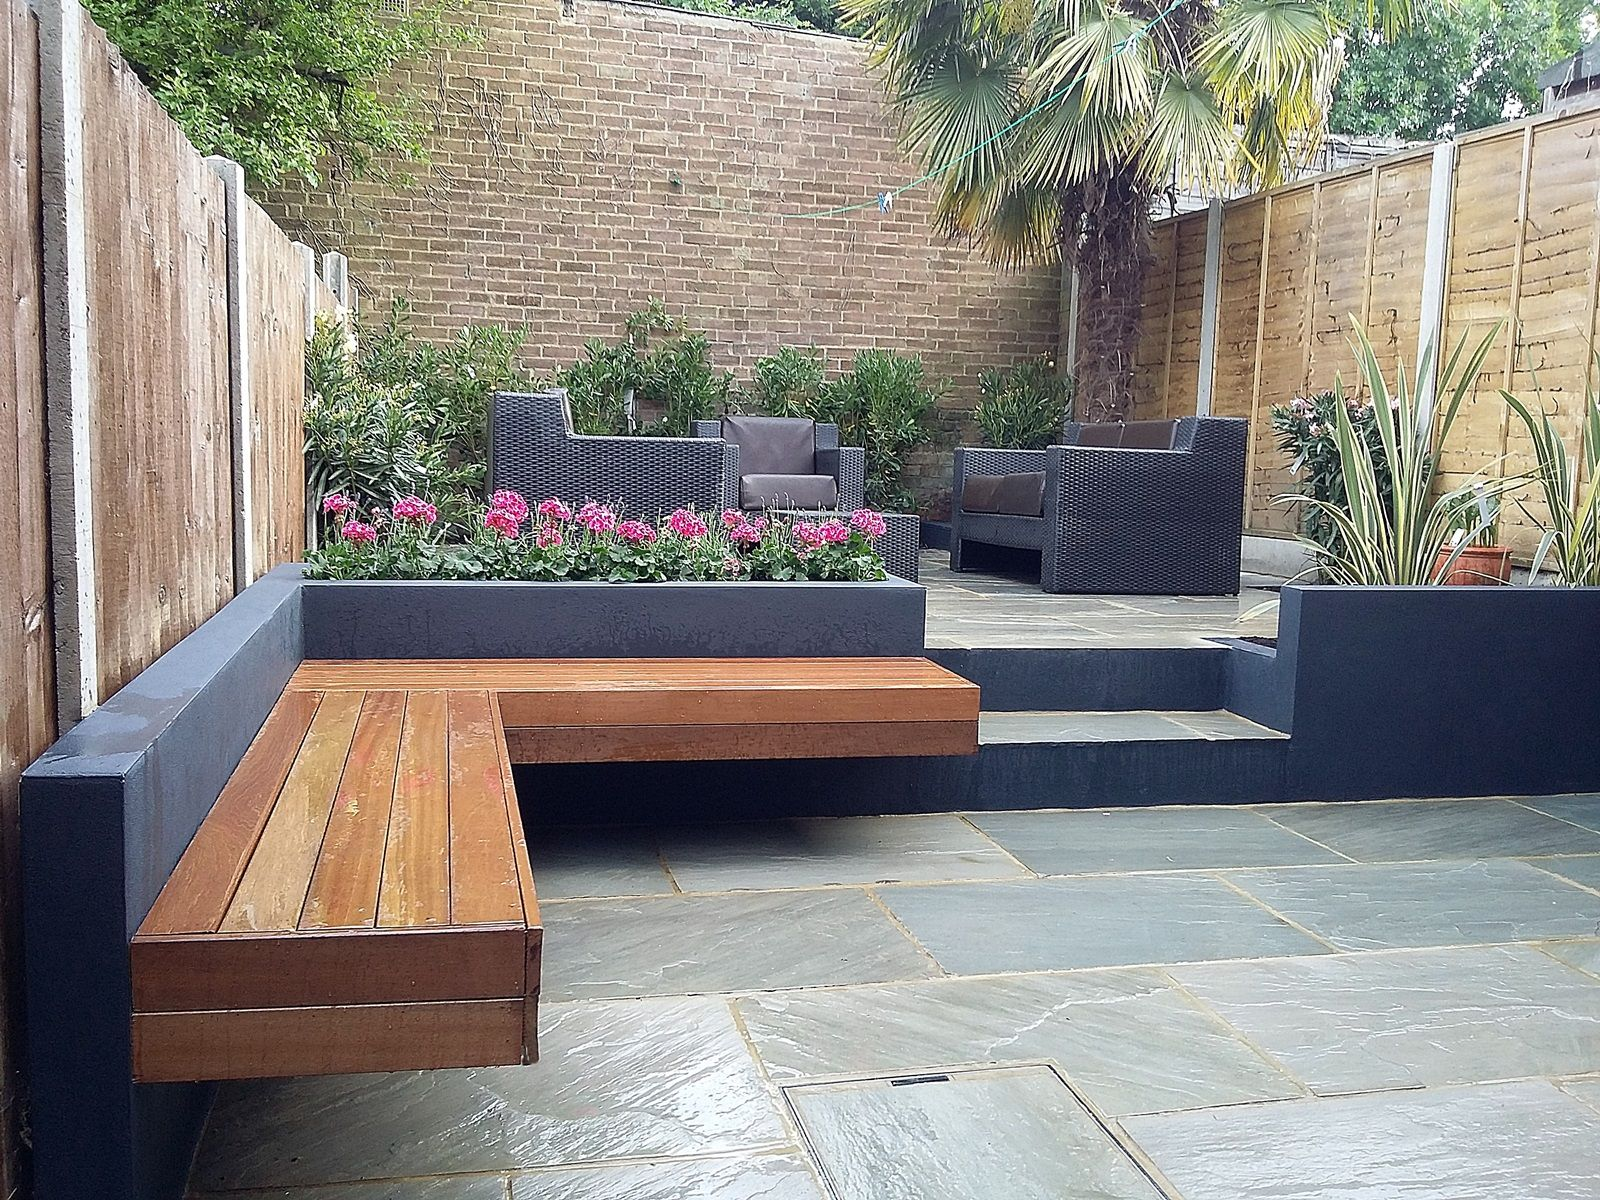 Modern garden design modern garden design london natural for Modern garden design ideas